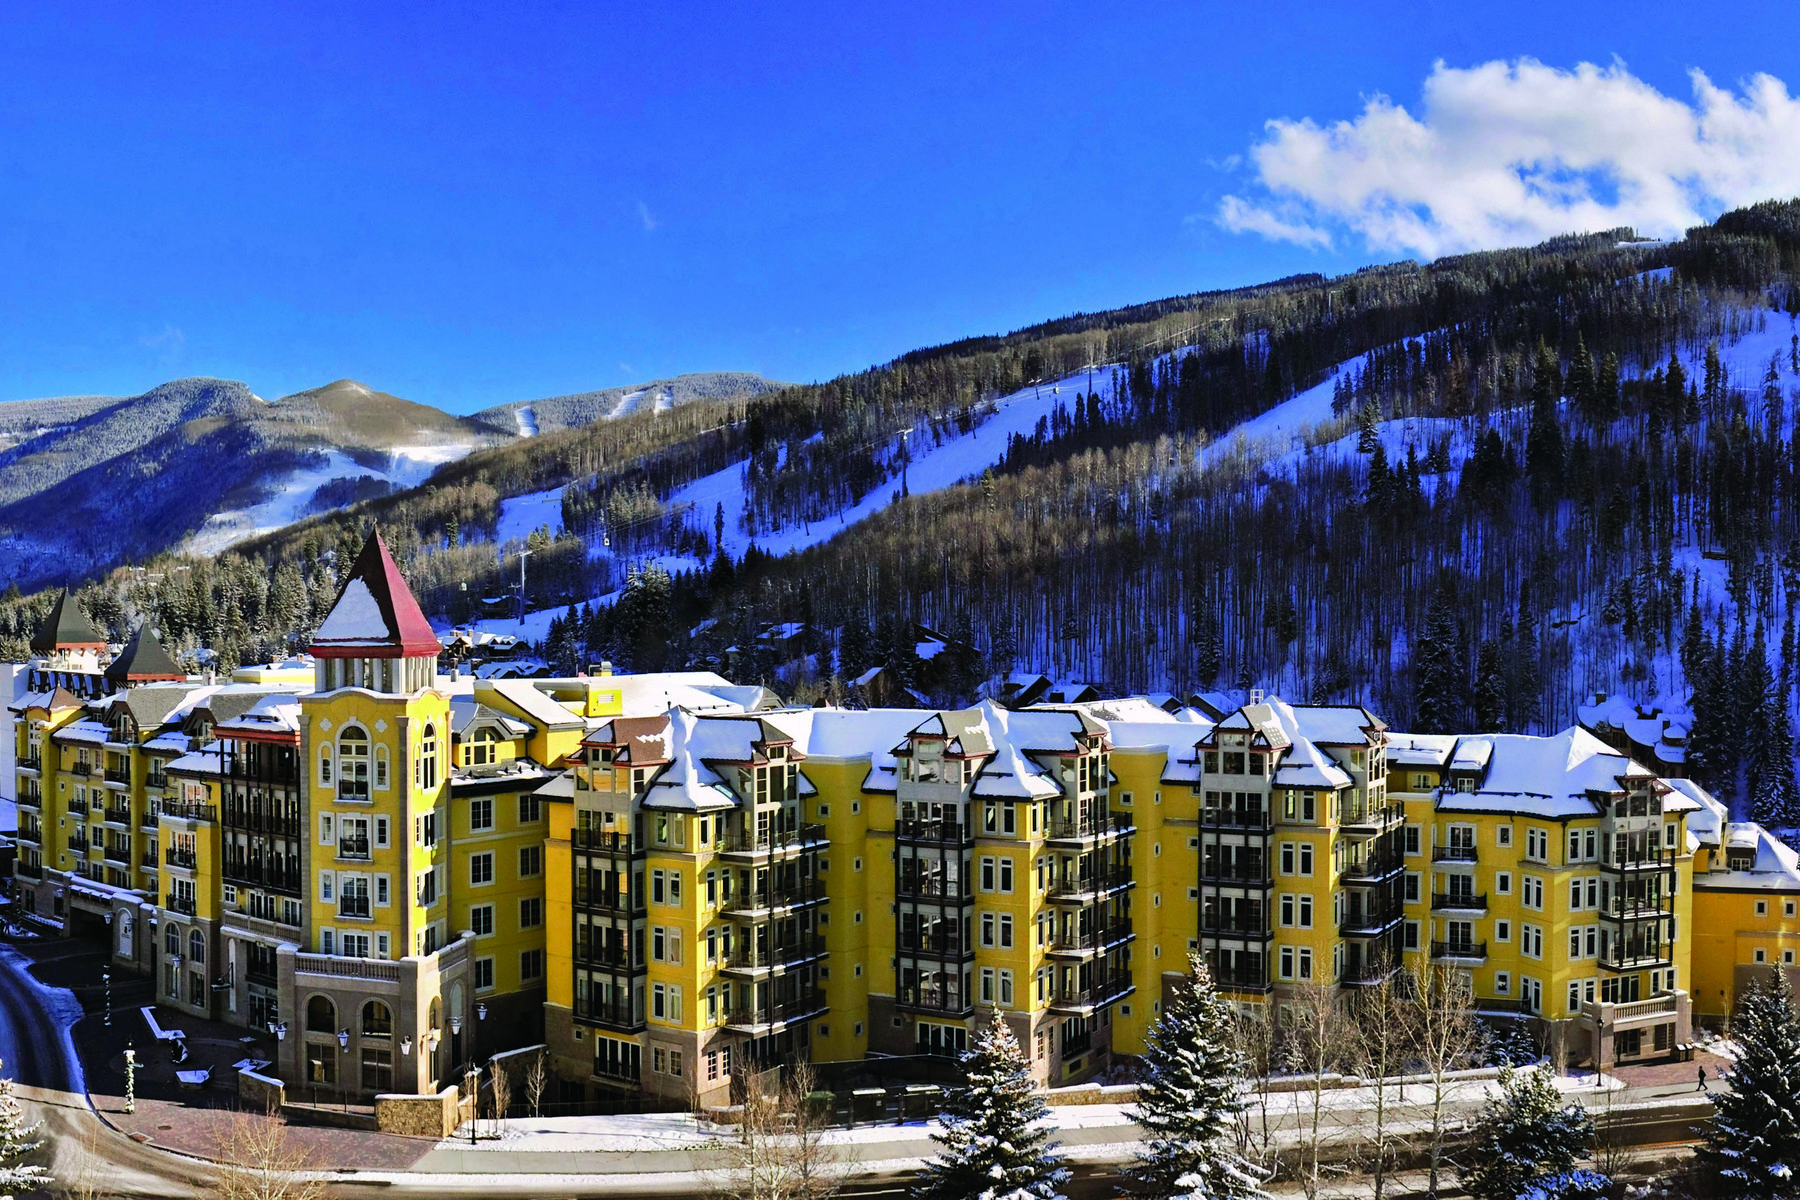 共管物業 為 出售 在 The Ritz-Carlton Residence R111 728 West Lionshead Cir #R-111 Lionshead, Vail, 科羅拉多州, 81657 美國